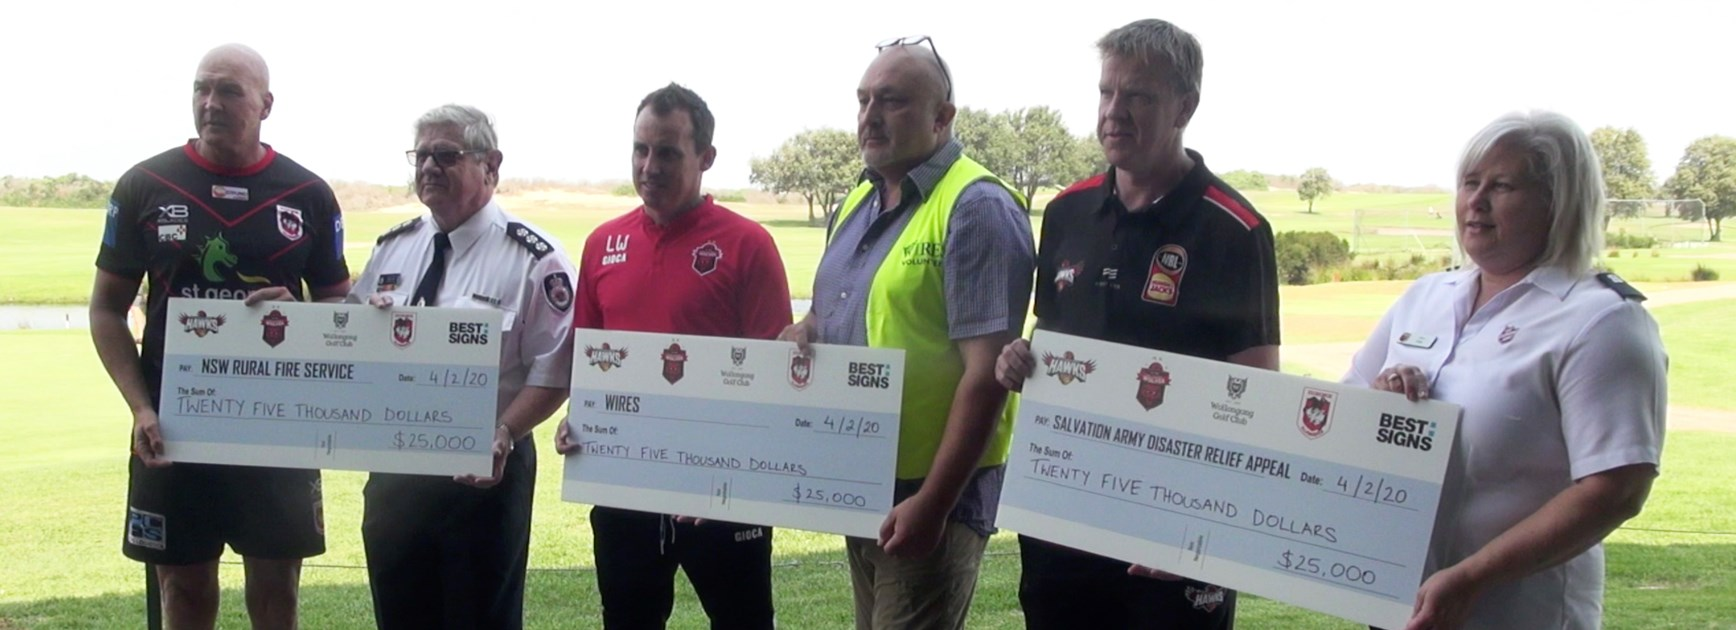 Illawarra Codes Combined golf day raises $75k